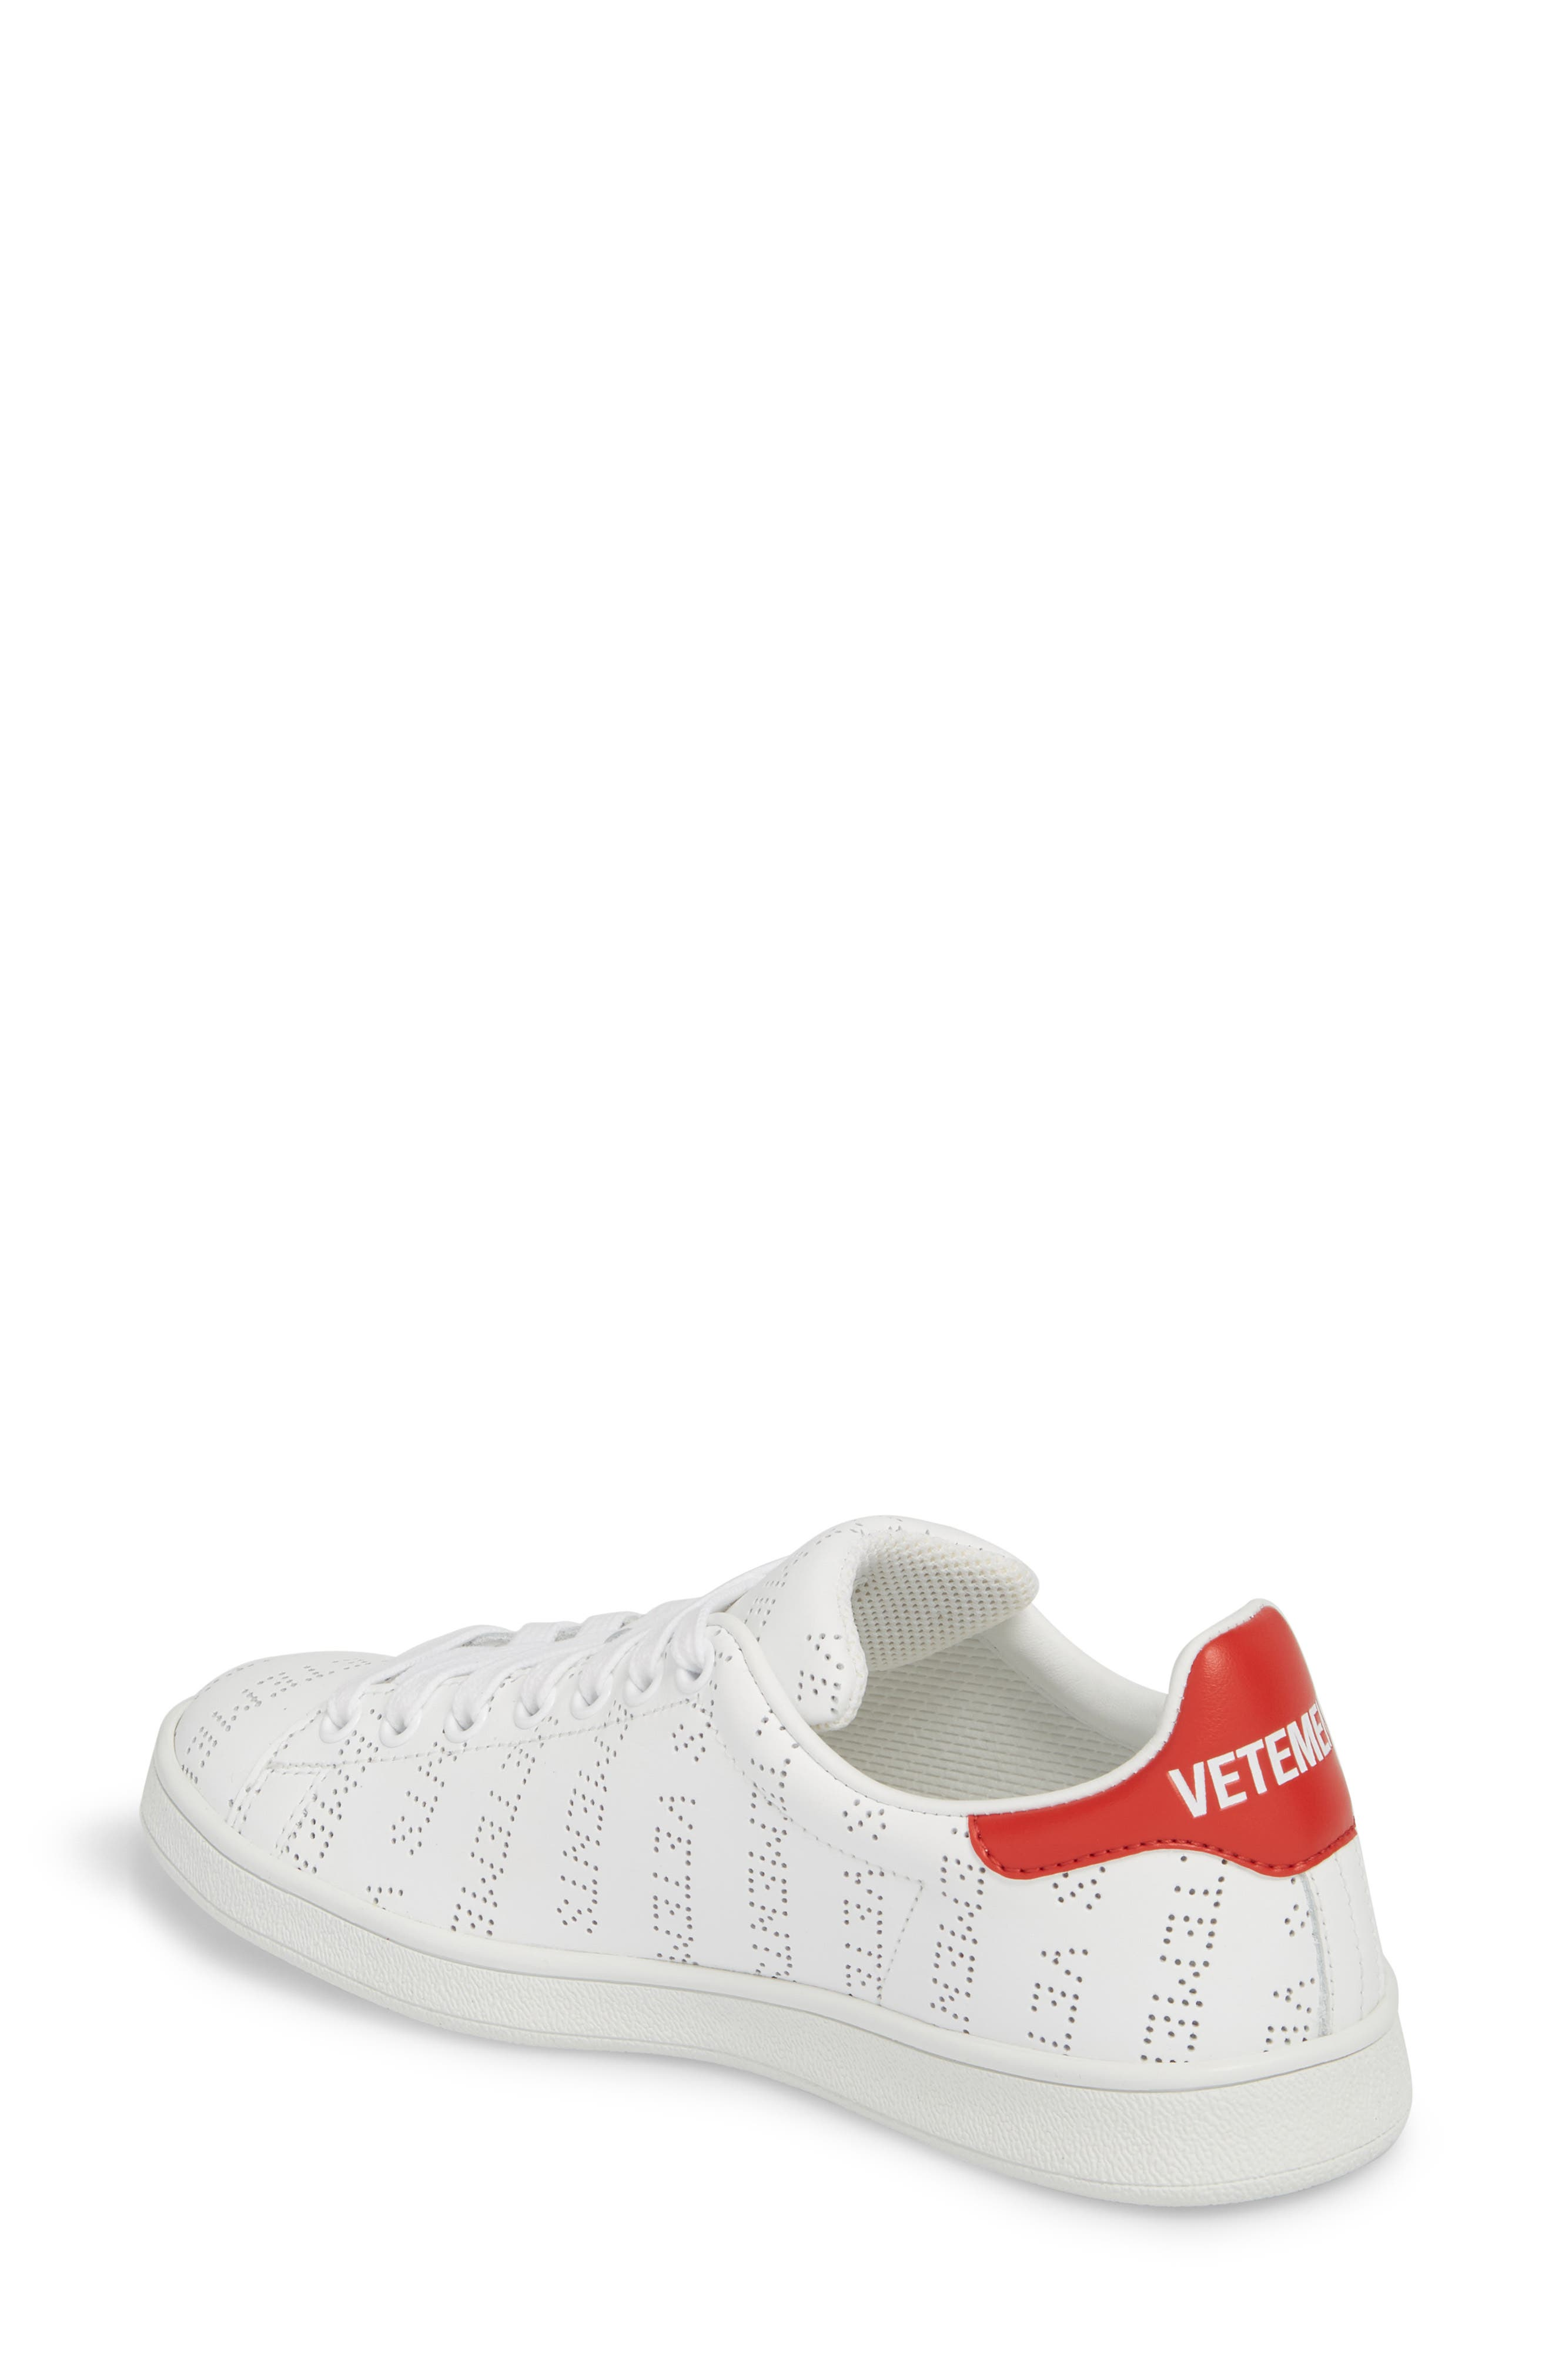 Perforated Sneaker,                             Alternate thumbnail 2, color,                             WHITE RED